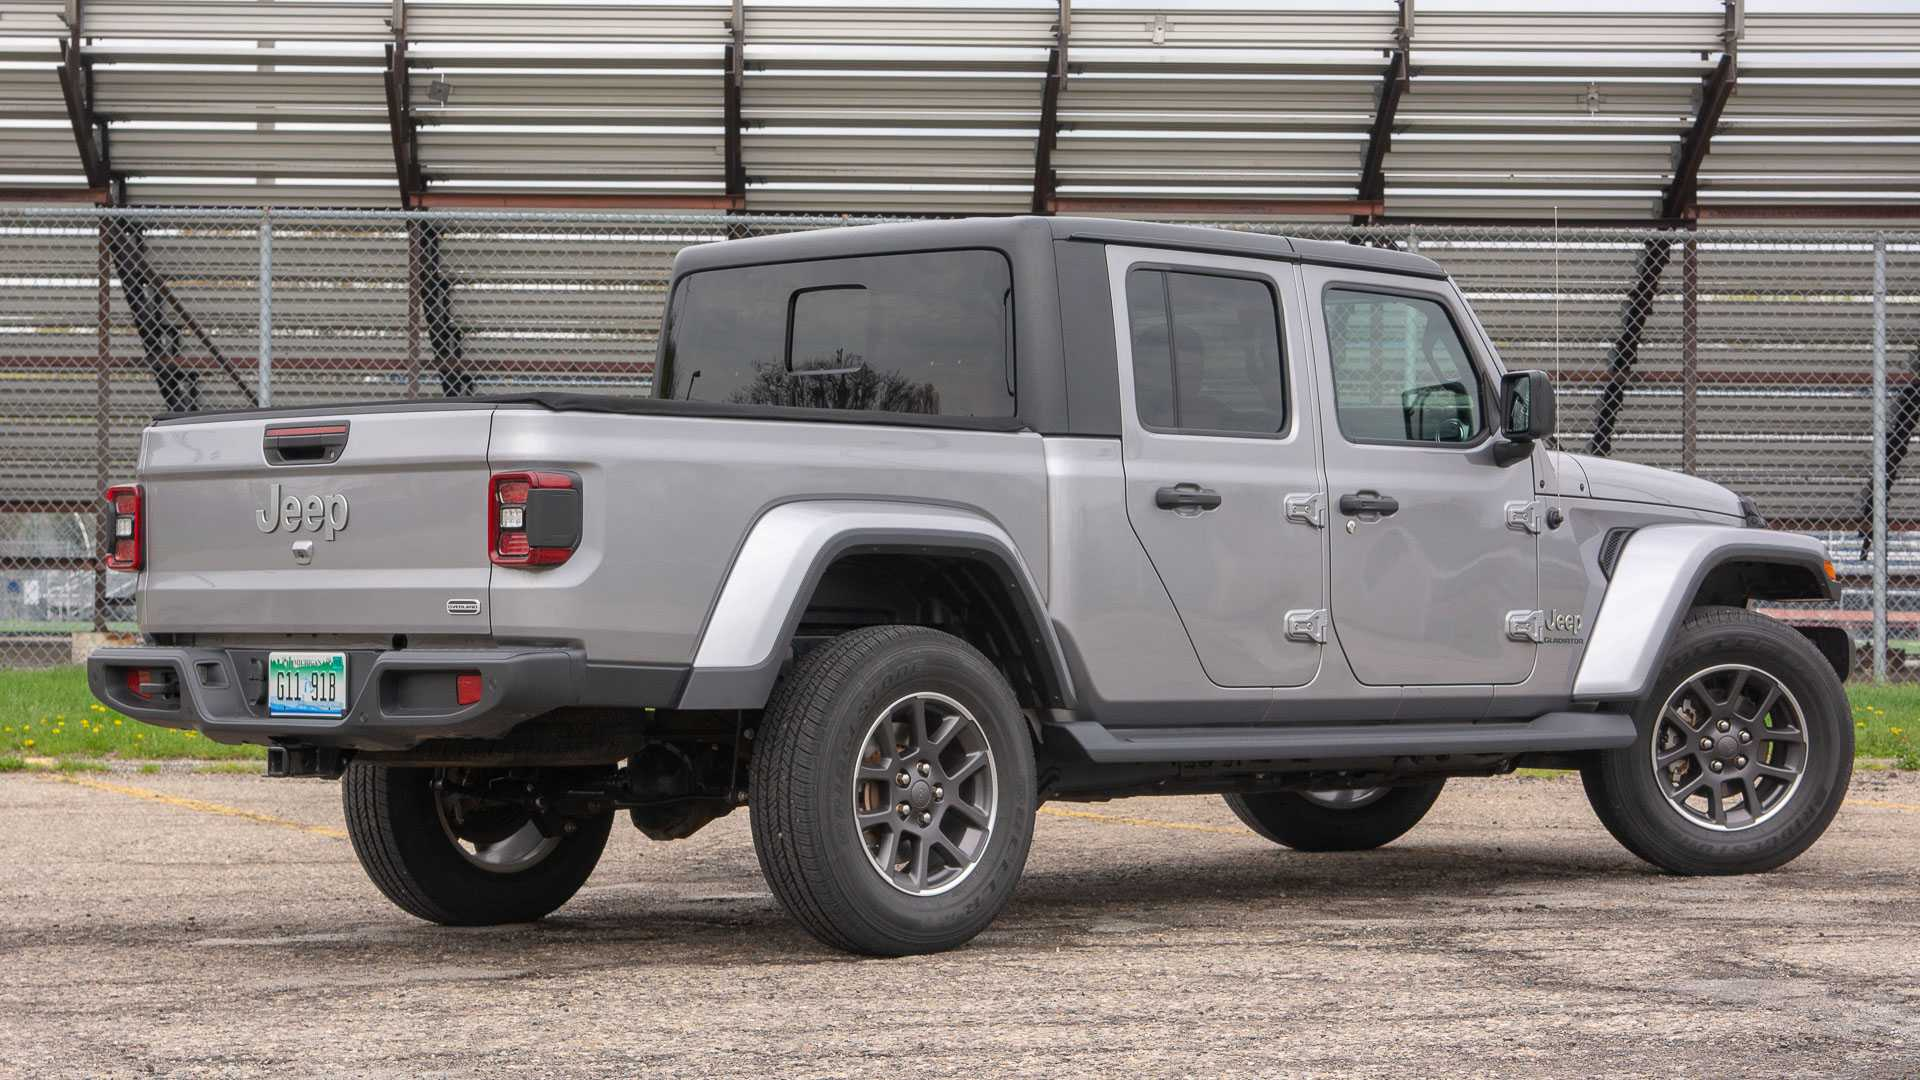 2020 Jeep Gladiator Overland Review: The Jeep To Have